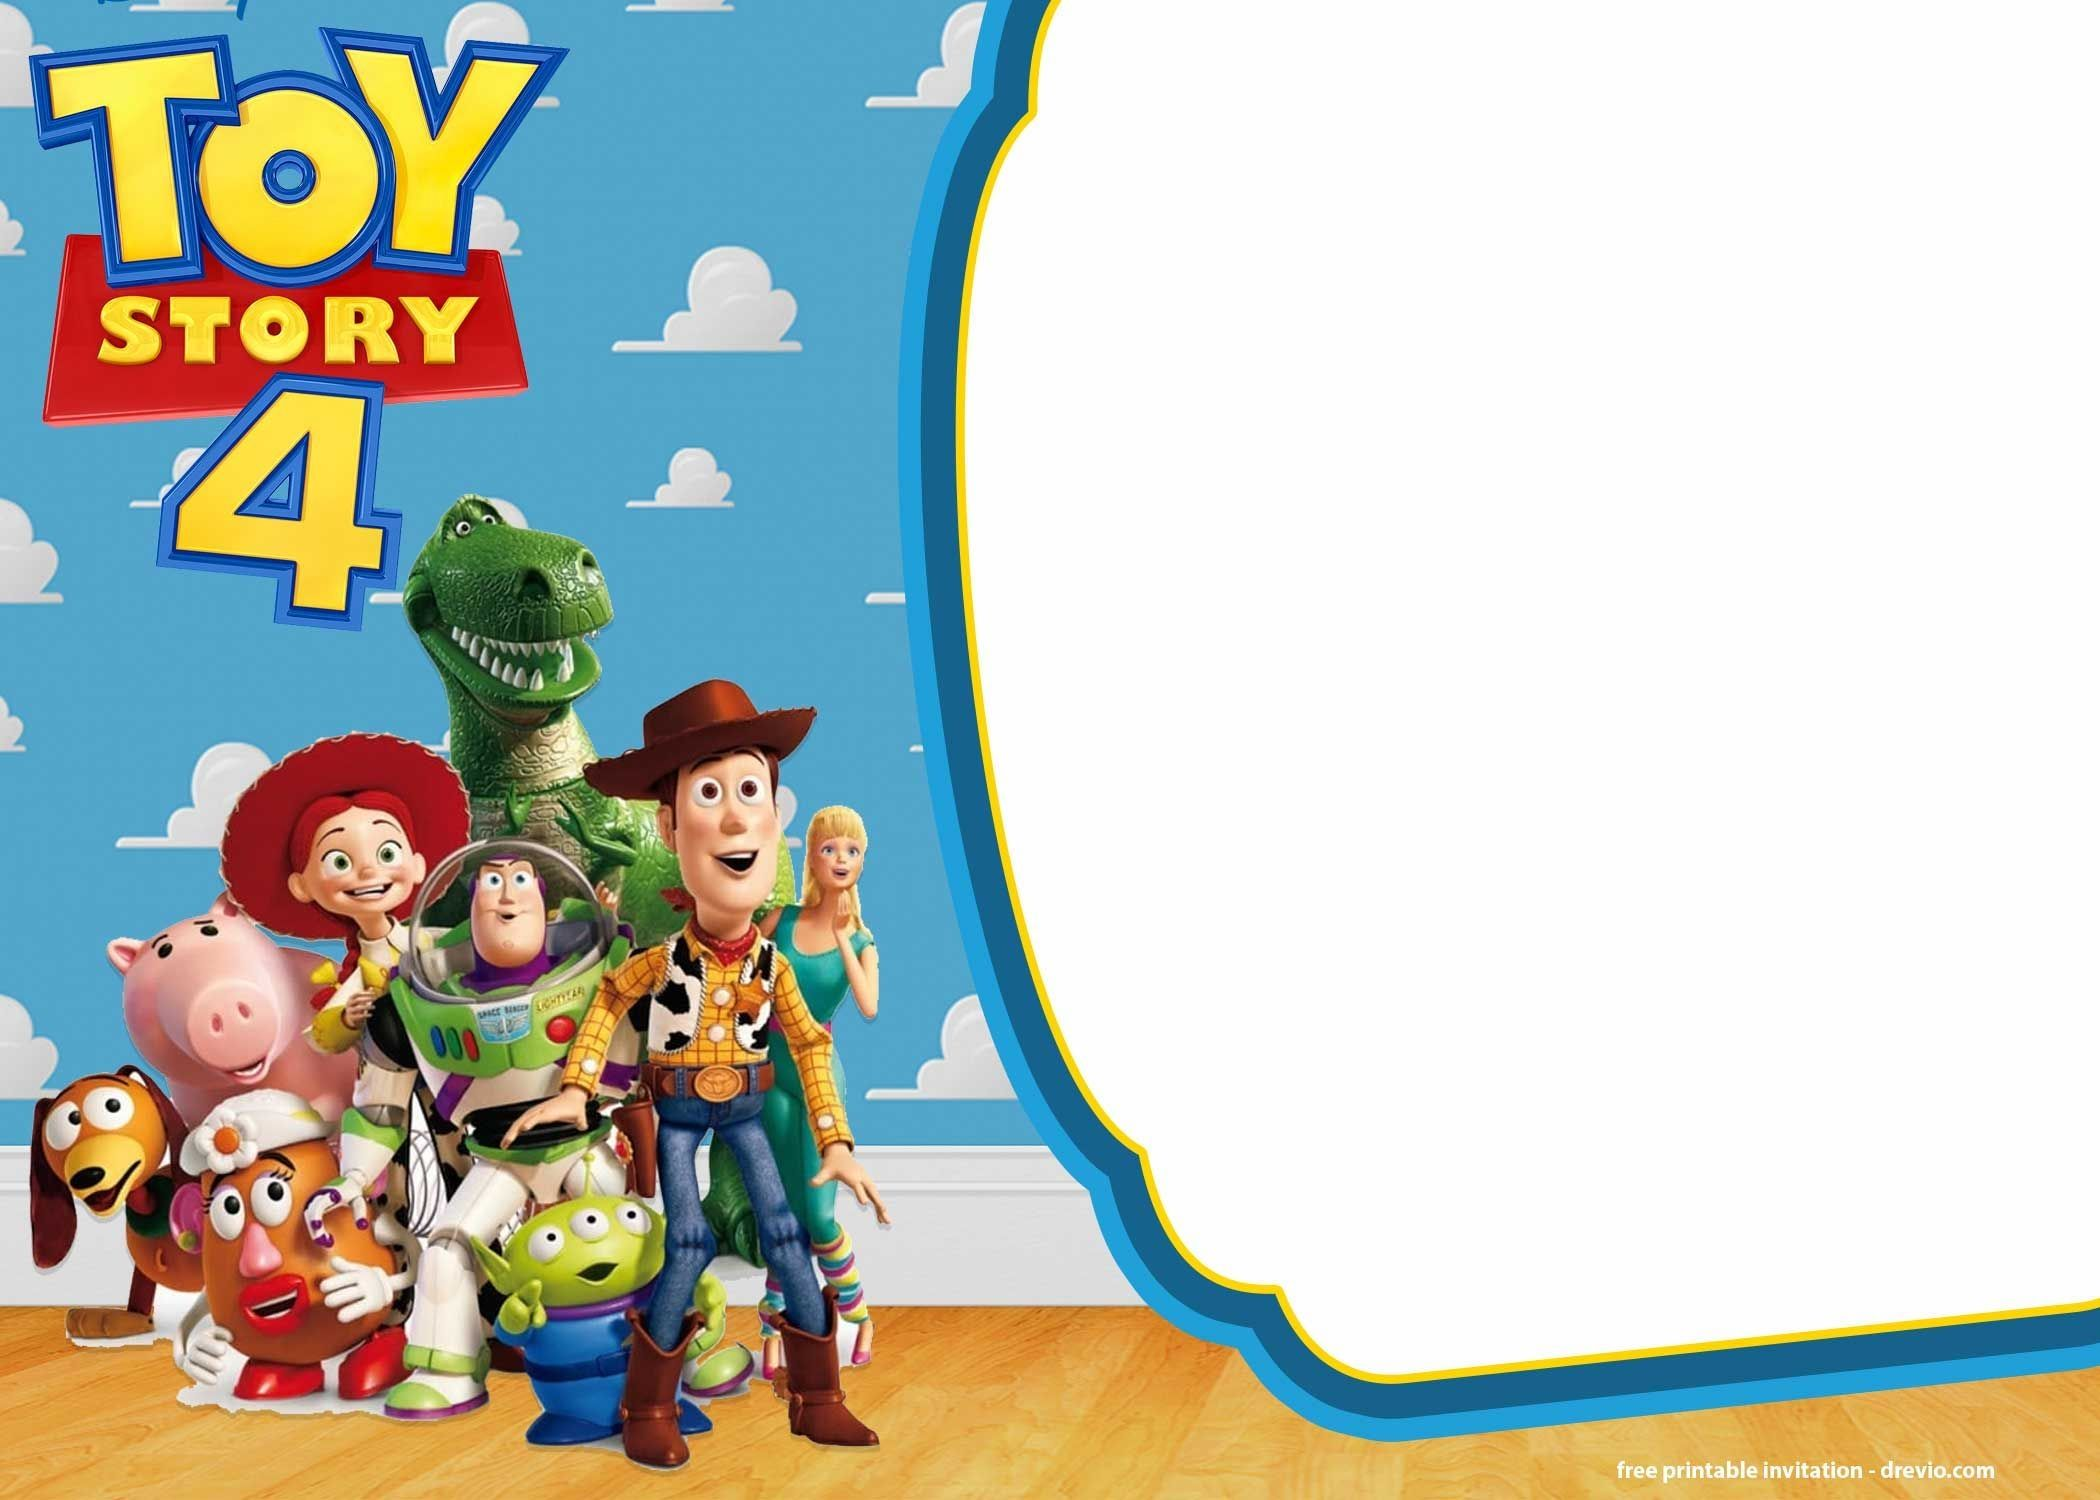 toy story 5 invitation template free FREE Printable Toy Story 5